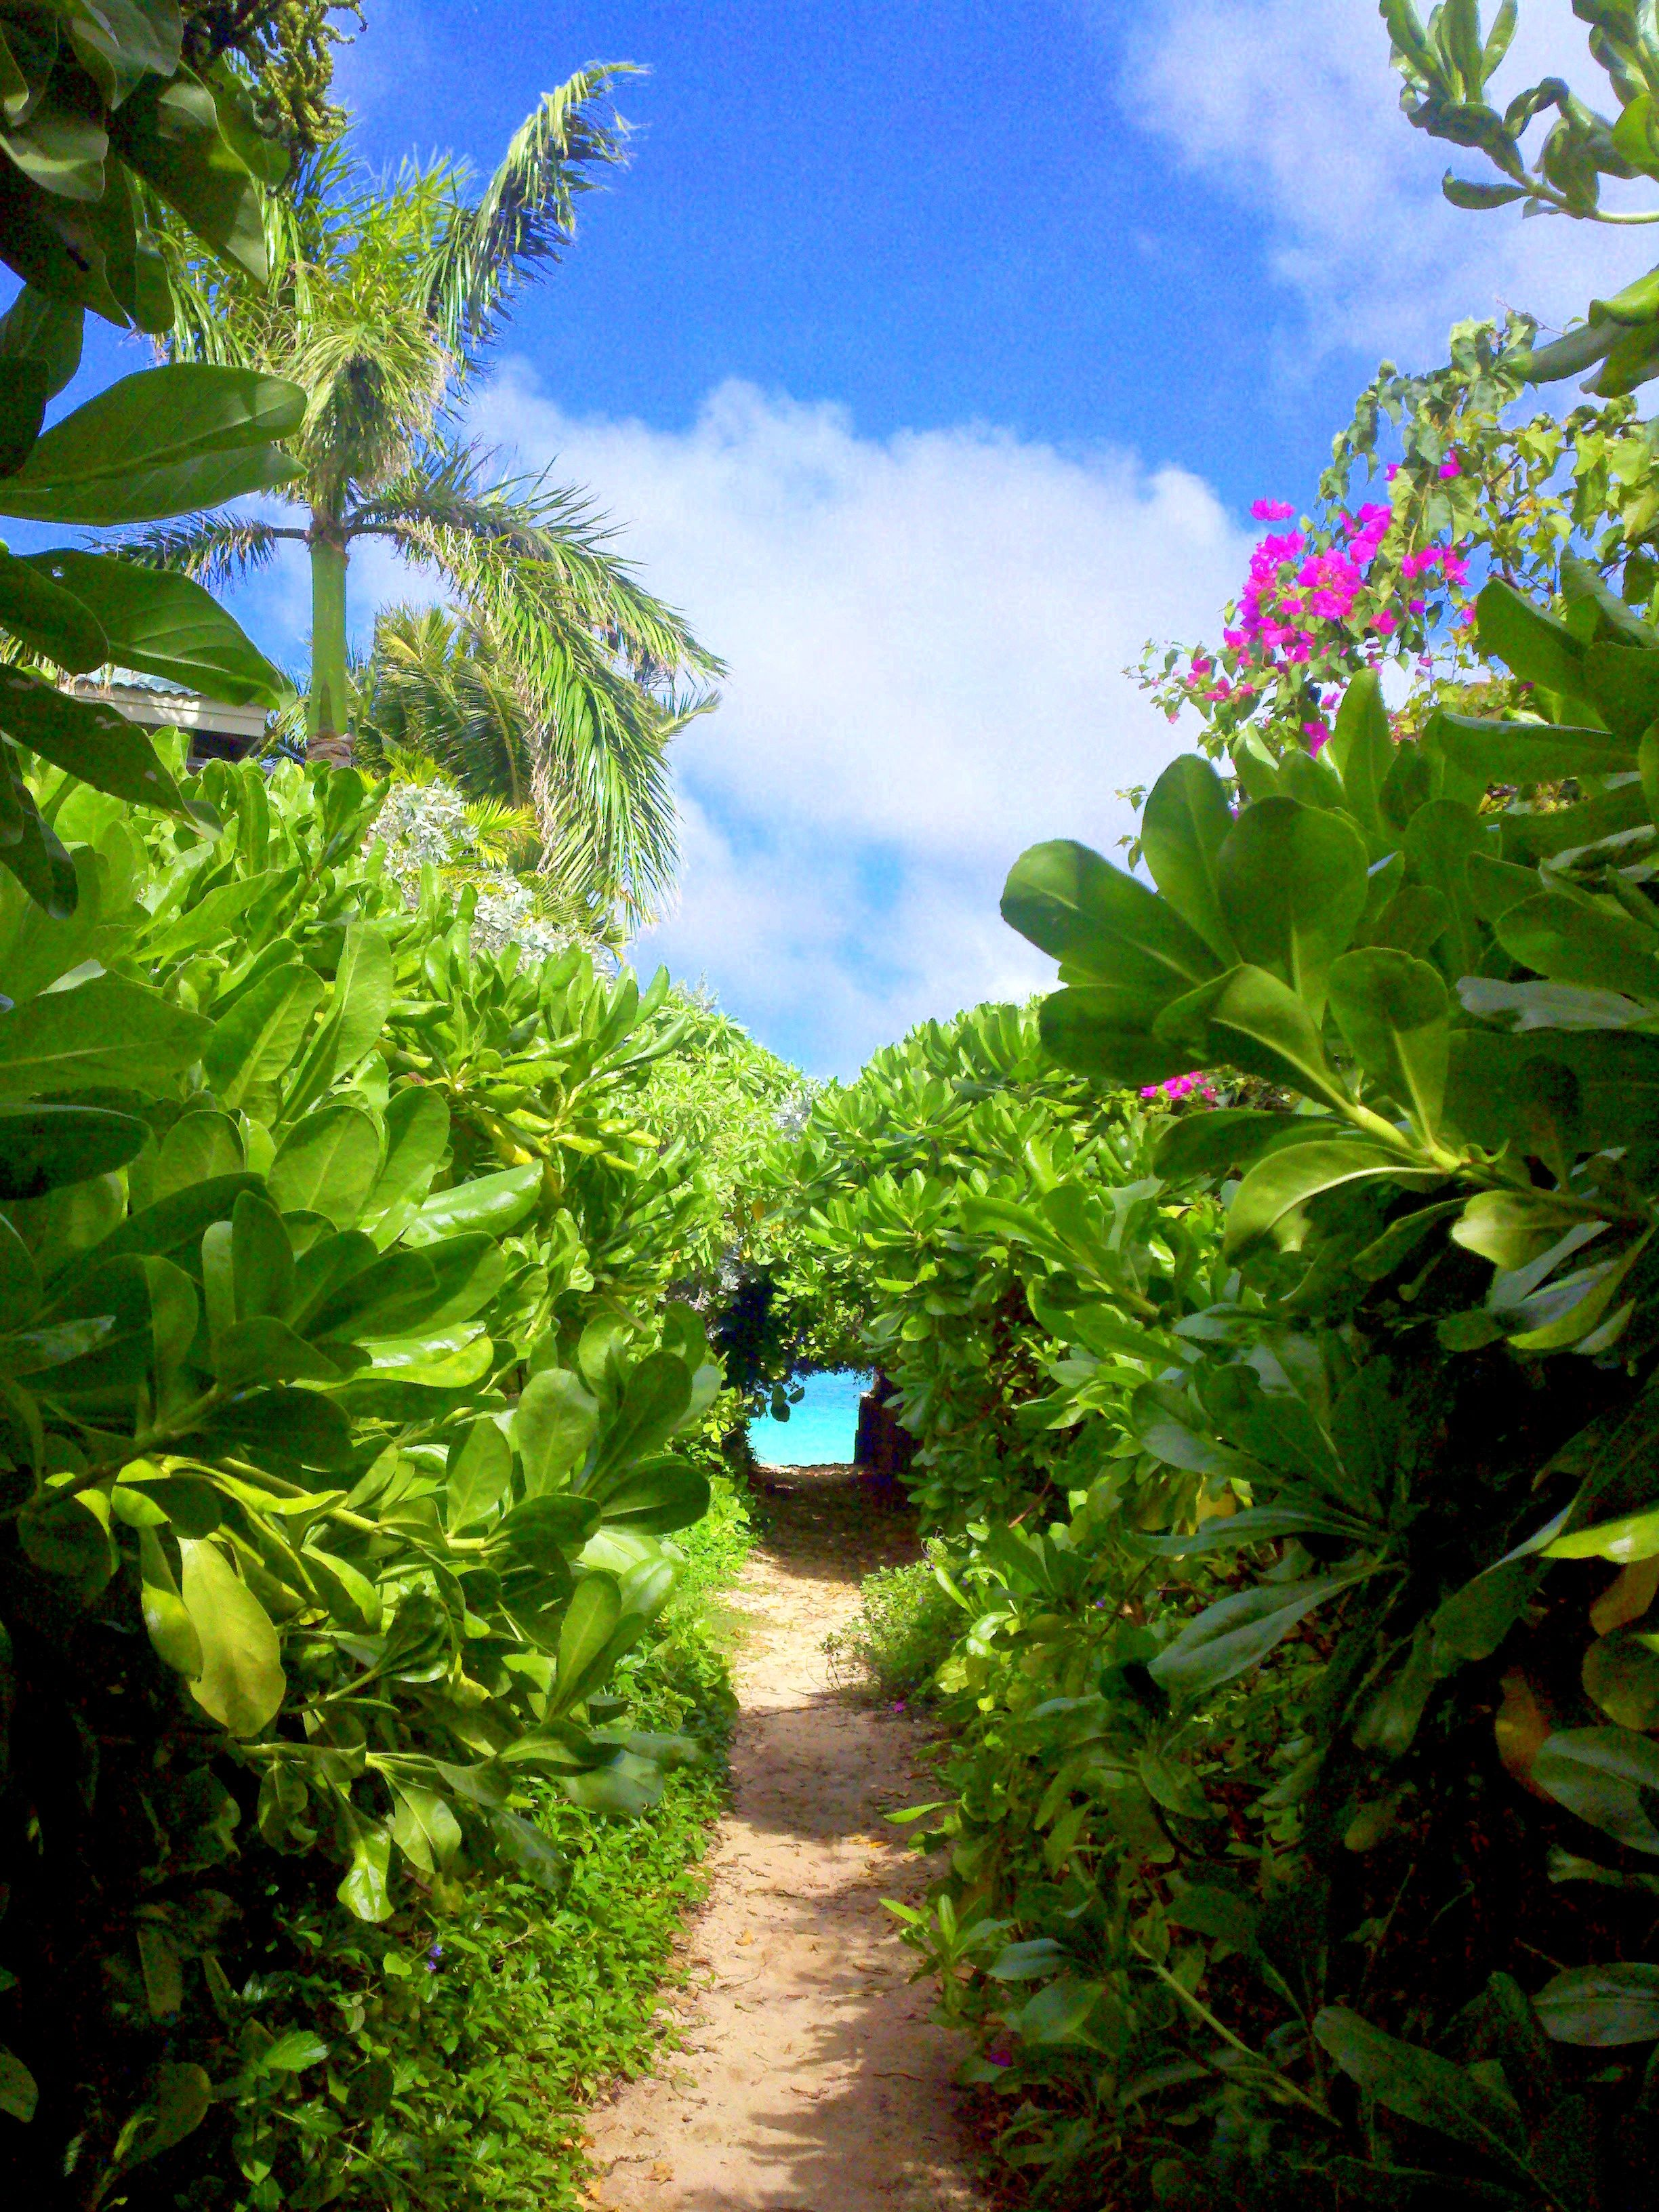 Lanikai beach Oahu HI,I remember so clearly walking thrOUGH HERE JUSTTO GET TO THE BEACH...........